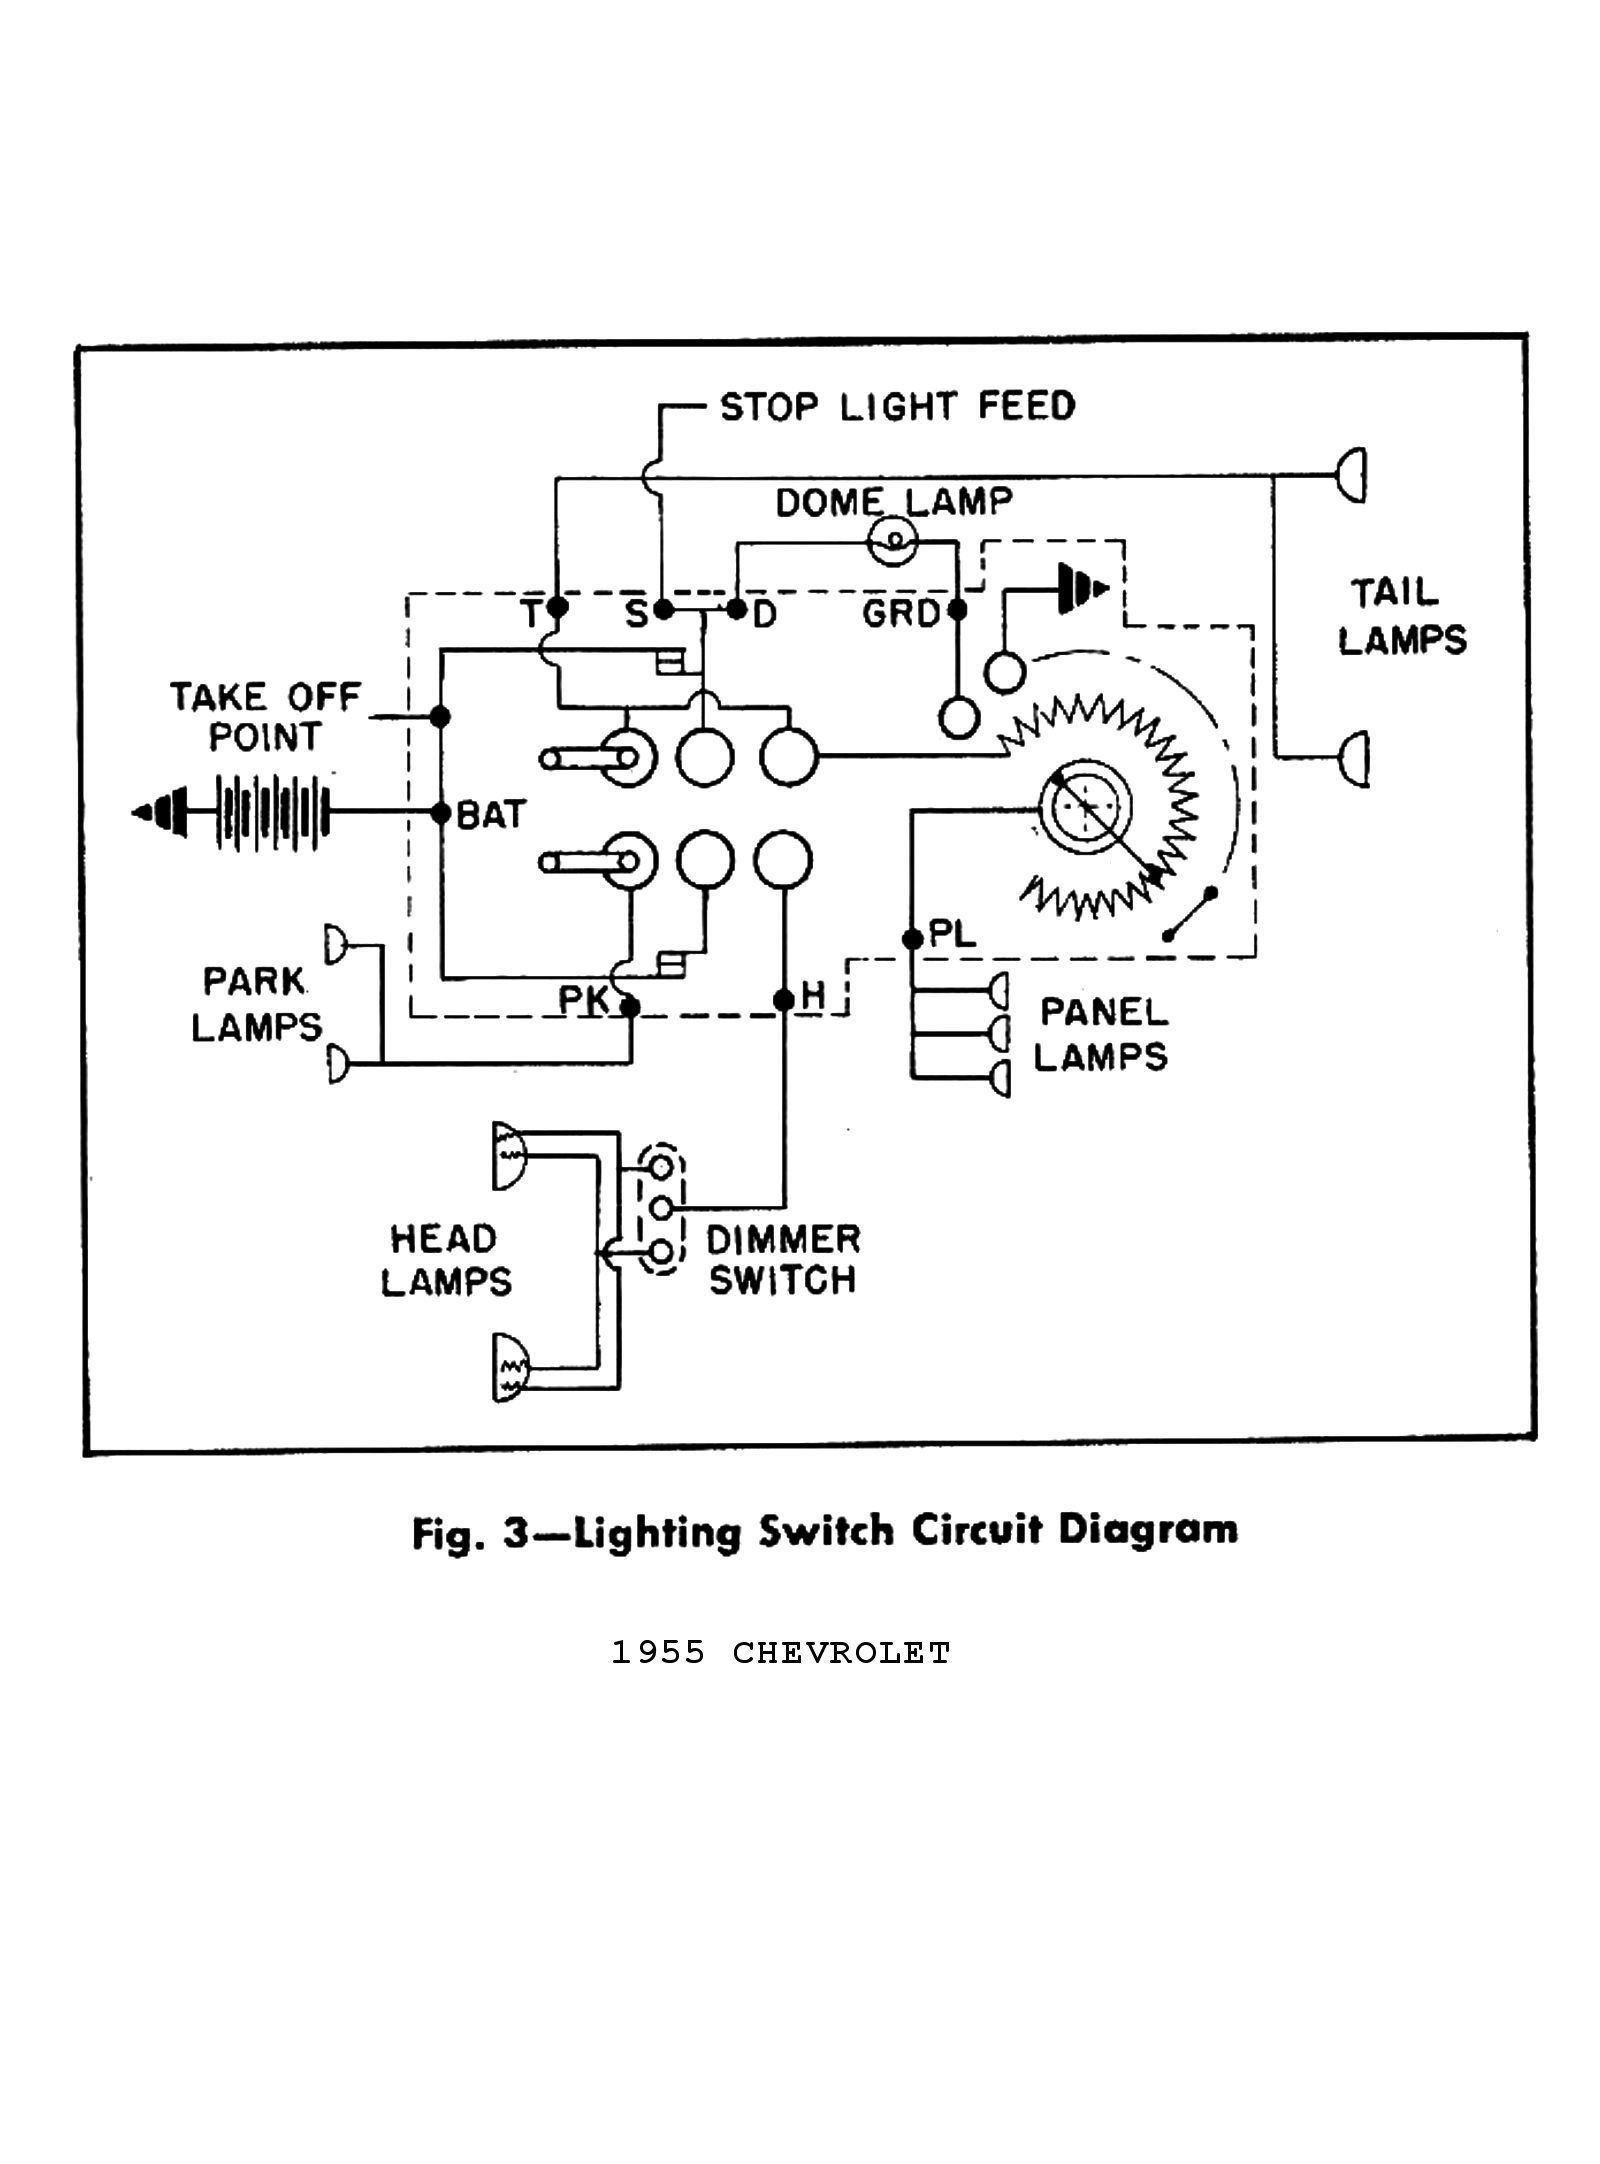 medium resolution of light switch wiring for 55 chevrolet data diagram schematic 51 turn signal switch and wiring question chevytalk free source 1958 chevrolet steering